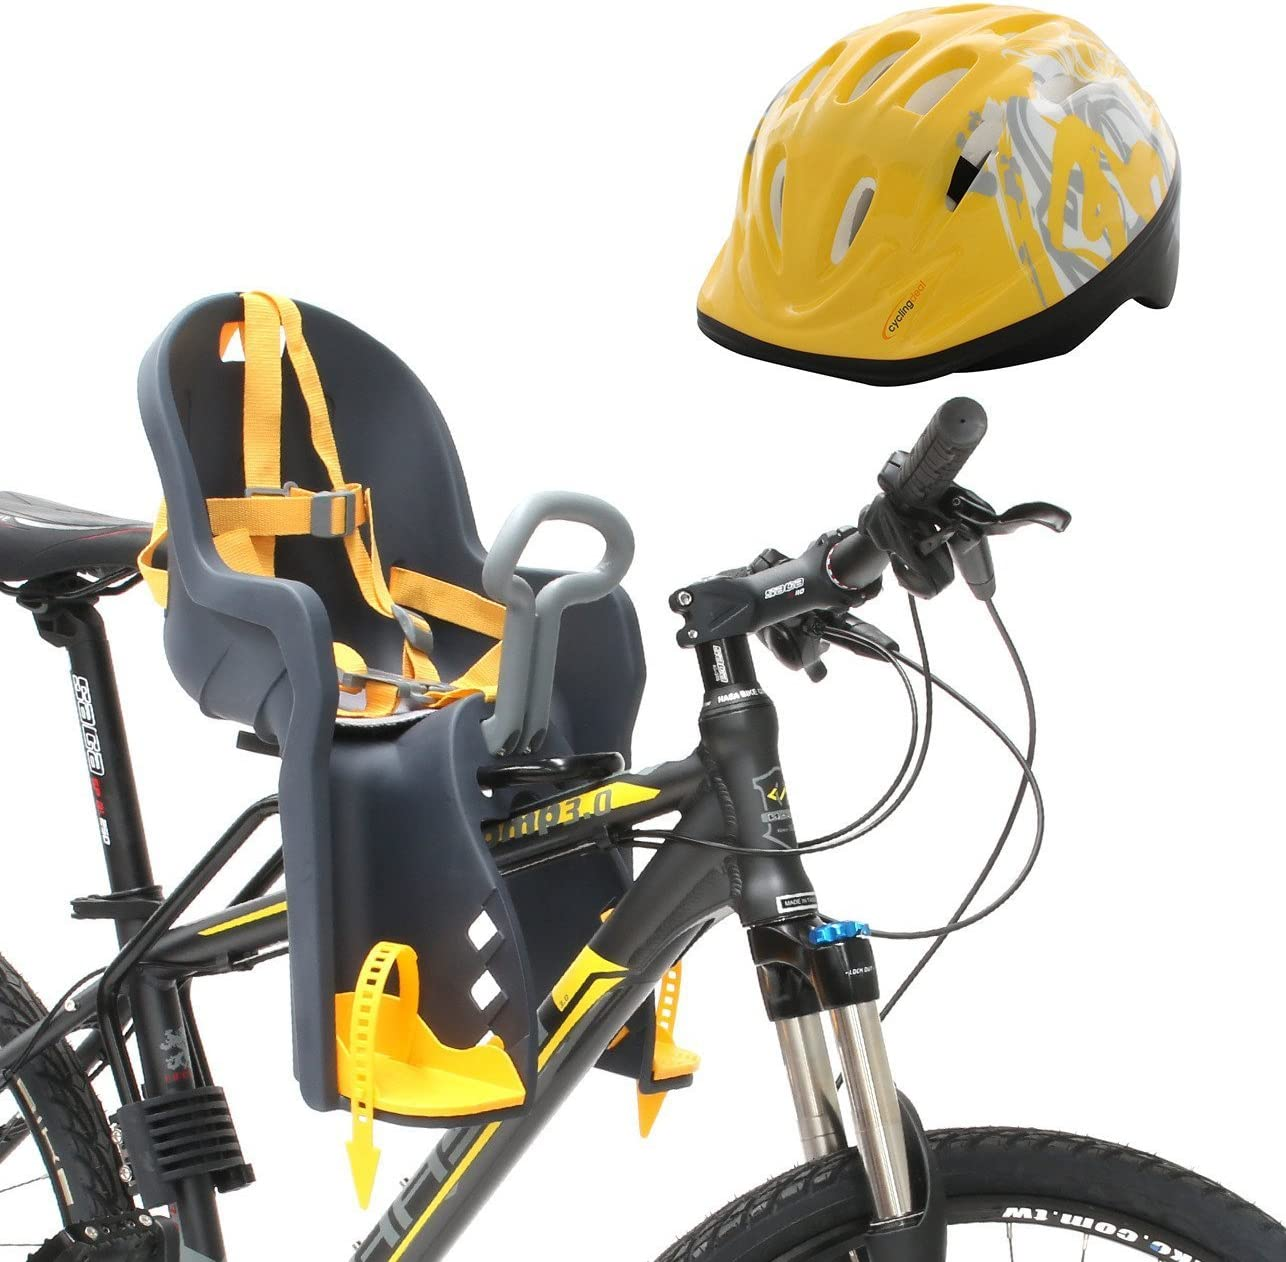 Bicycle Seat for - Kids Child Children Infant Toddler - Front Mount Baby Carrier Seat Bike Carrier USA Safely Standard with Handrail and Helmets - Great for Adult Bike Attachment